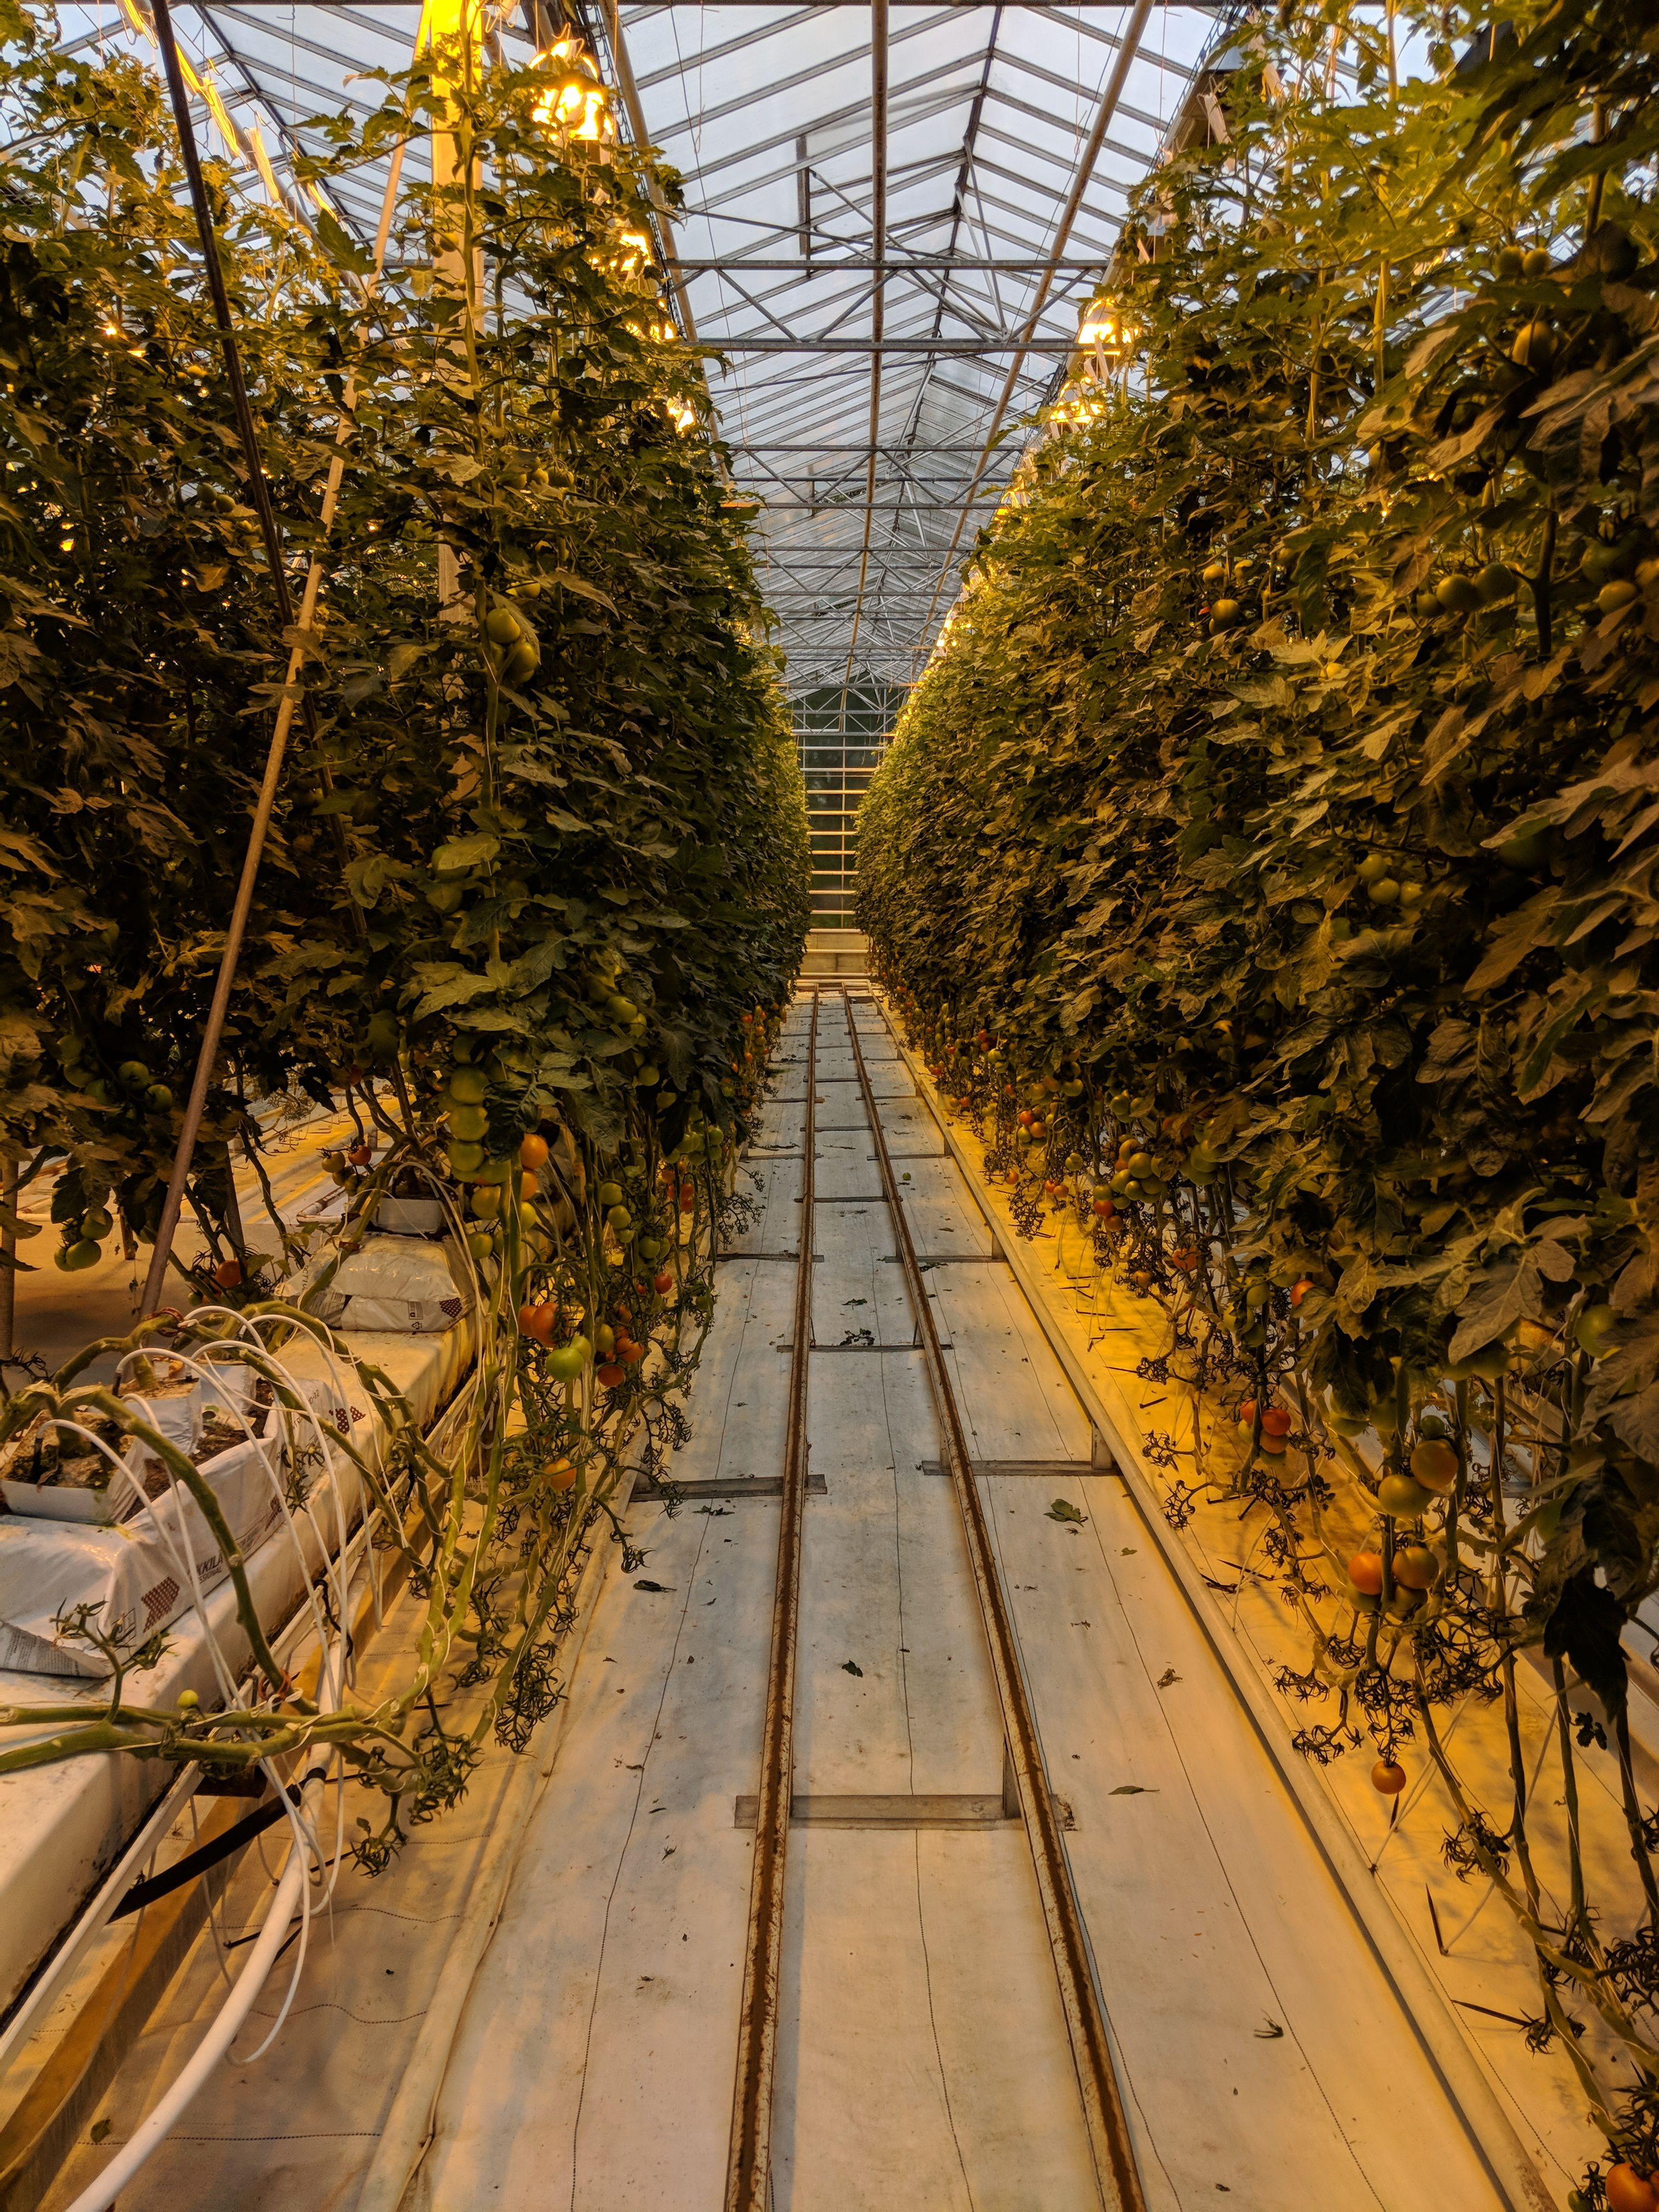 Tomatoes growing under artificial light in Iceland